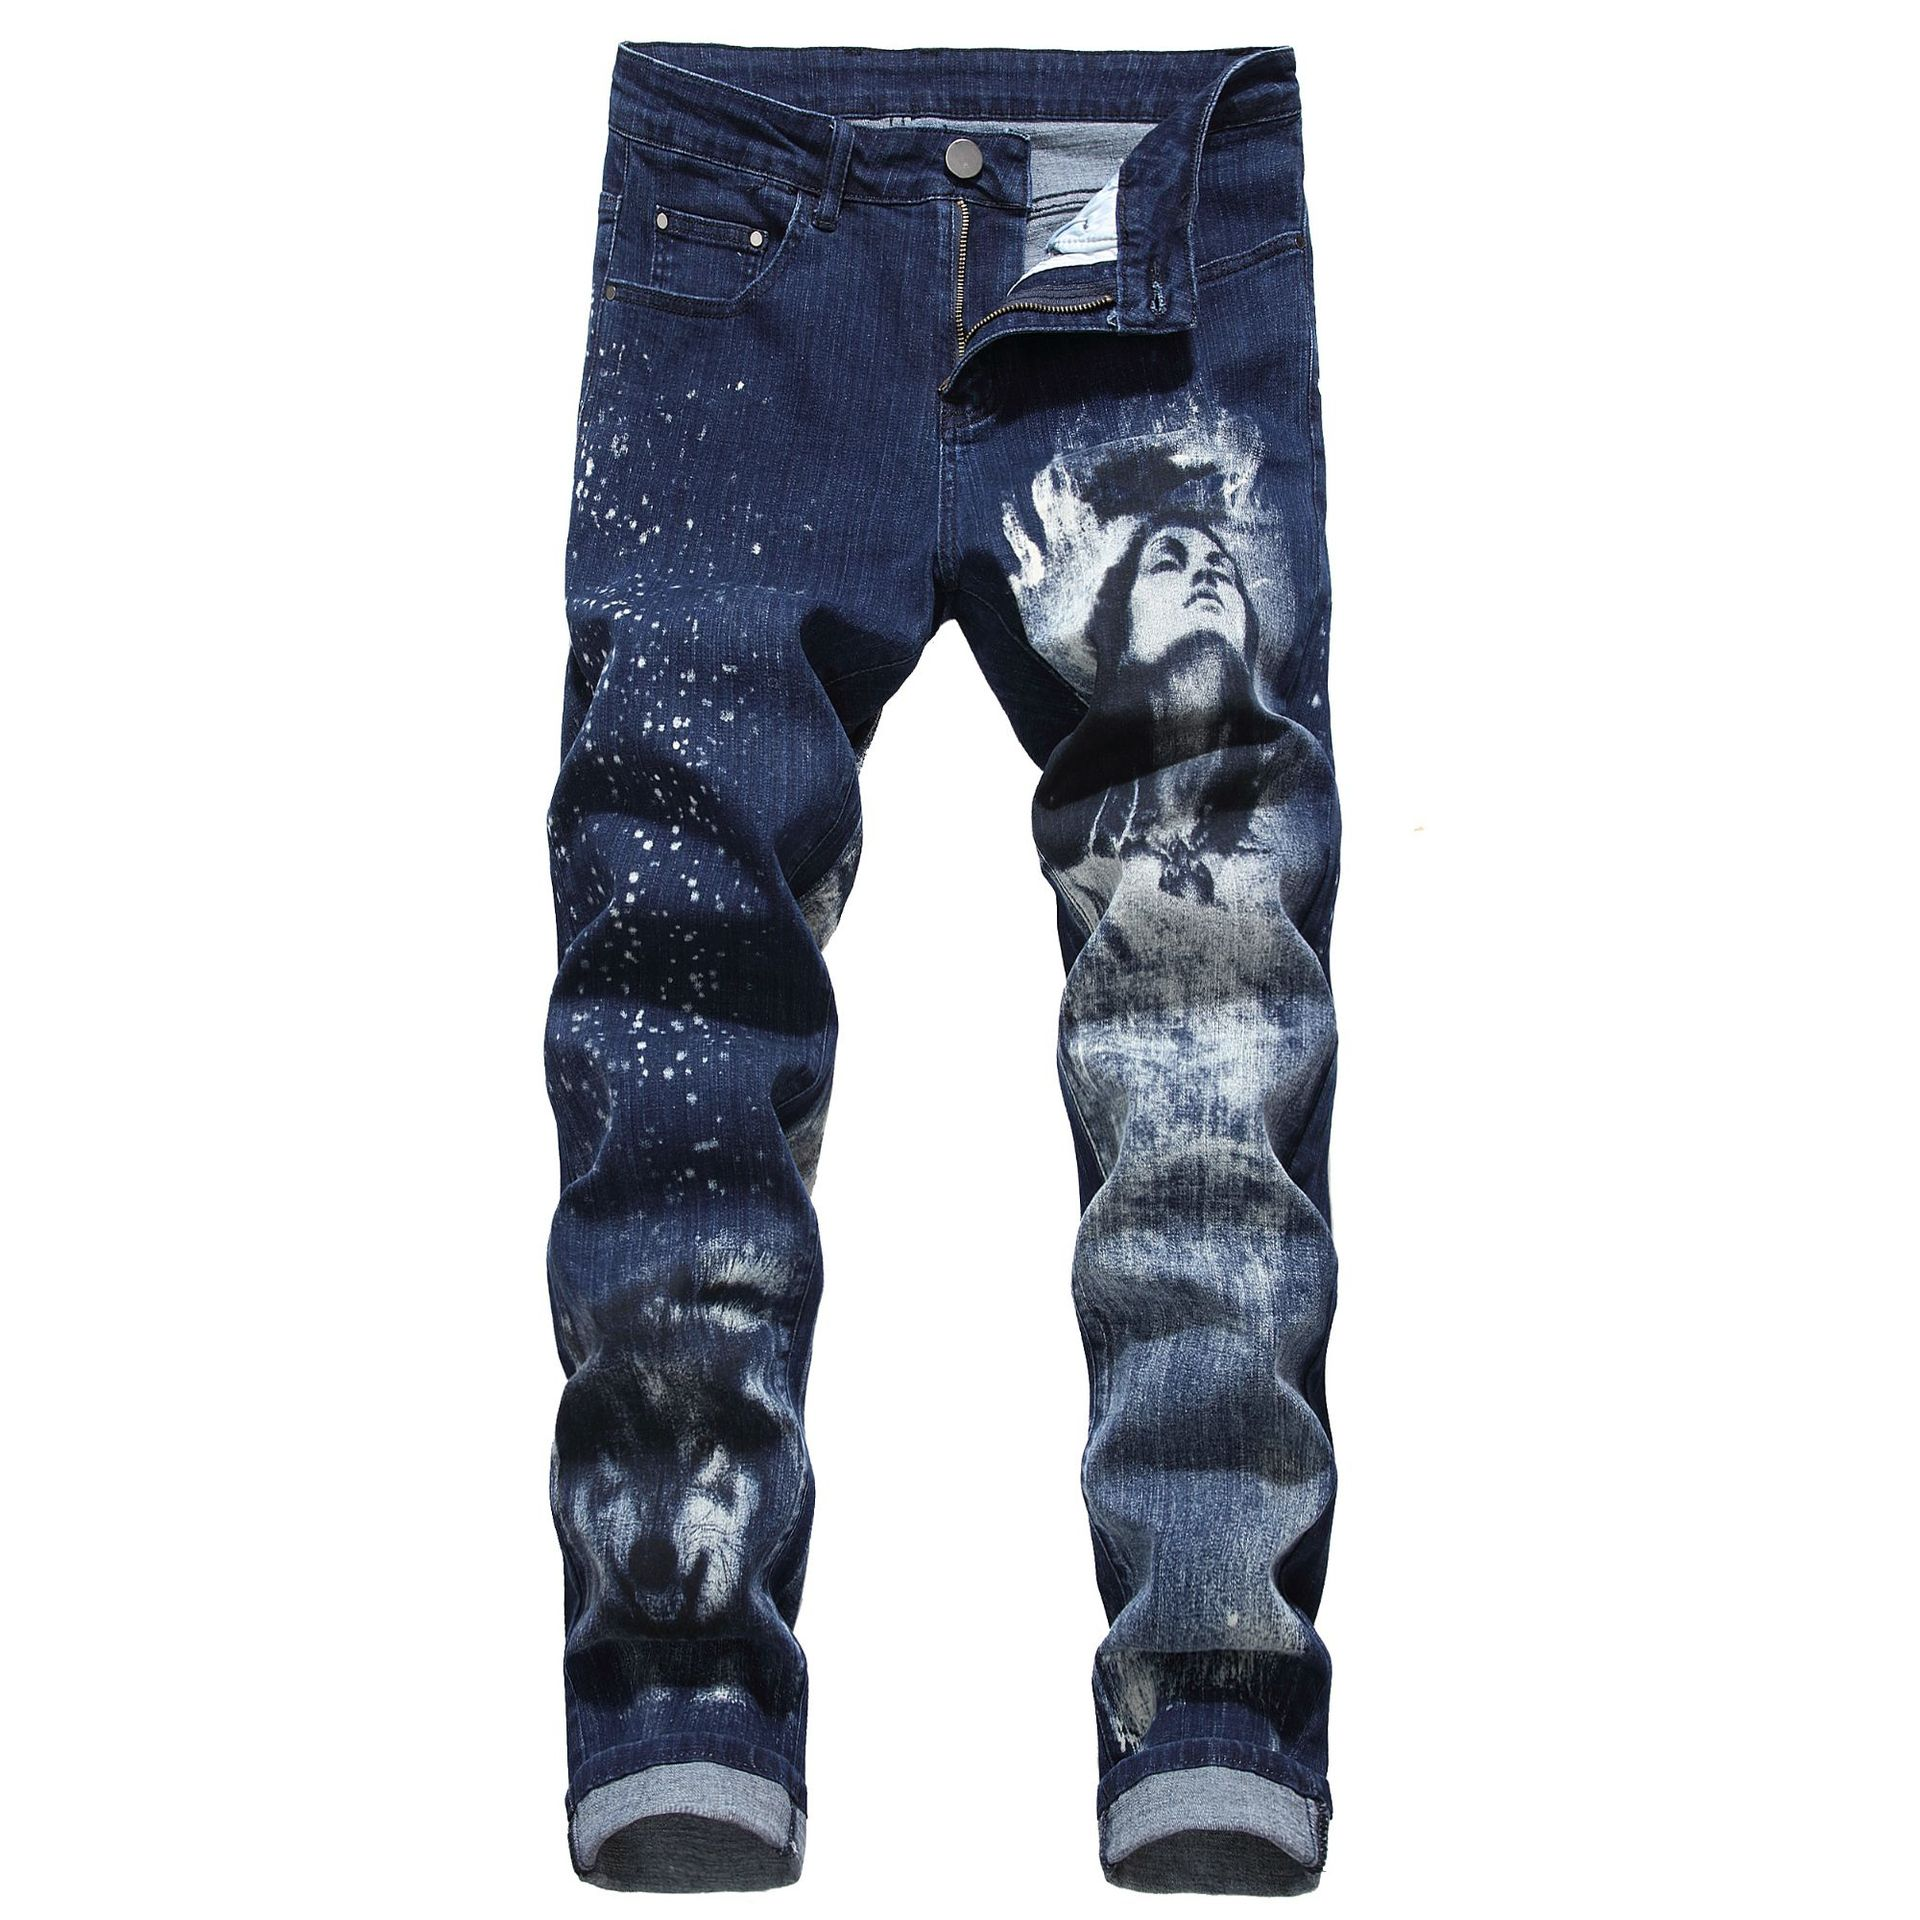 Fashion Denim Jeans Men Casual Autumn Winter Slim 3D Beauty Wolf Painted Straight Jeans Cool Streetwear Male Long Trousers